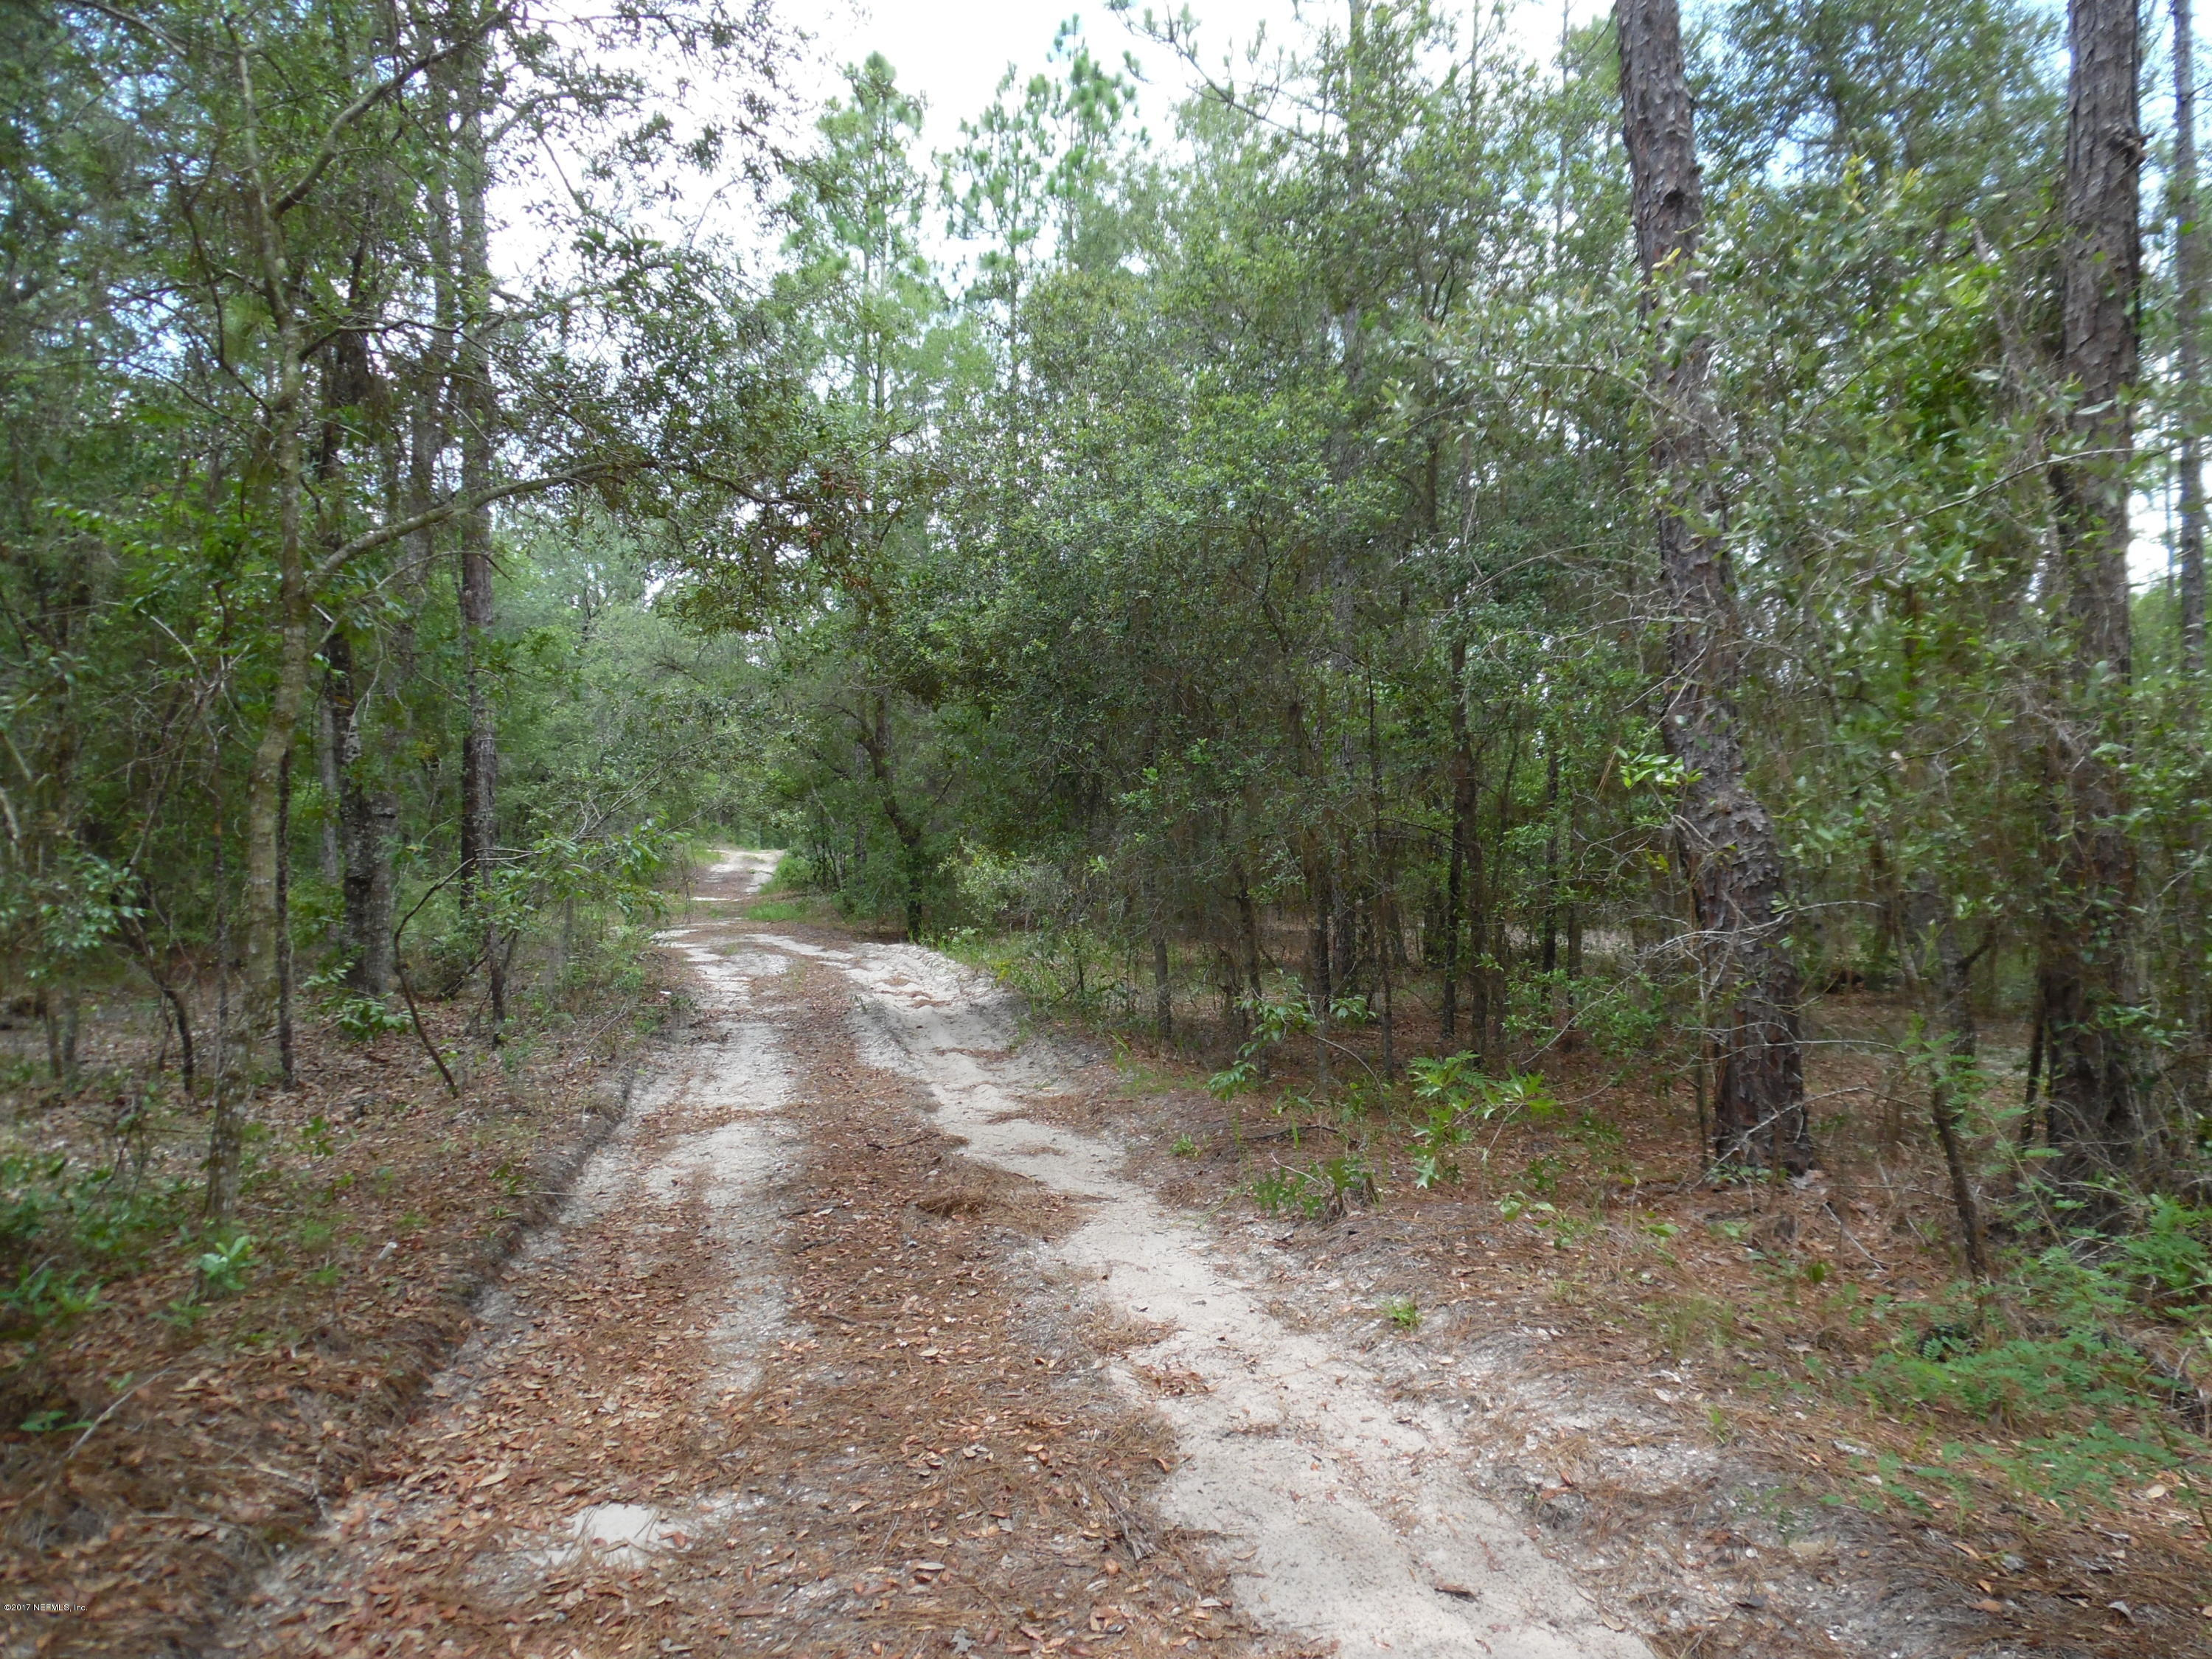 118 WEST LAKE, HAWTHORNE, FLORIDA 32640, ,Vacant land,For sale,WEST LAKE,877858